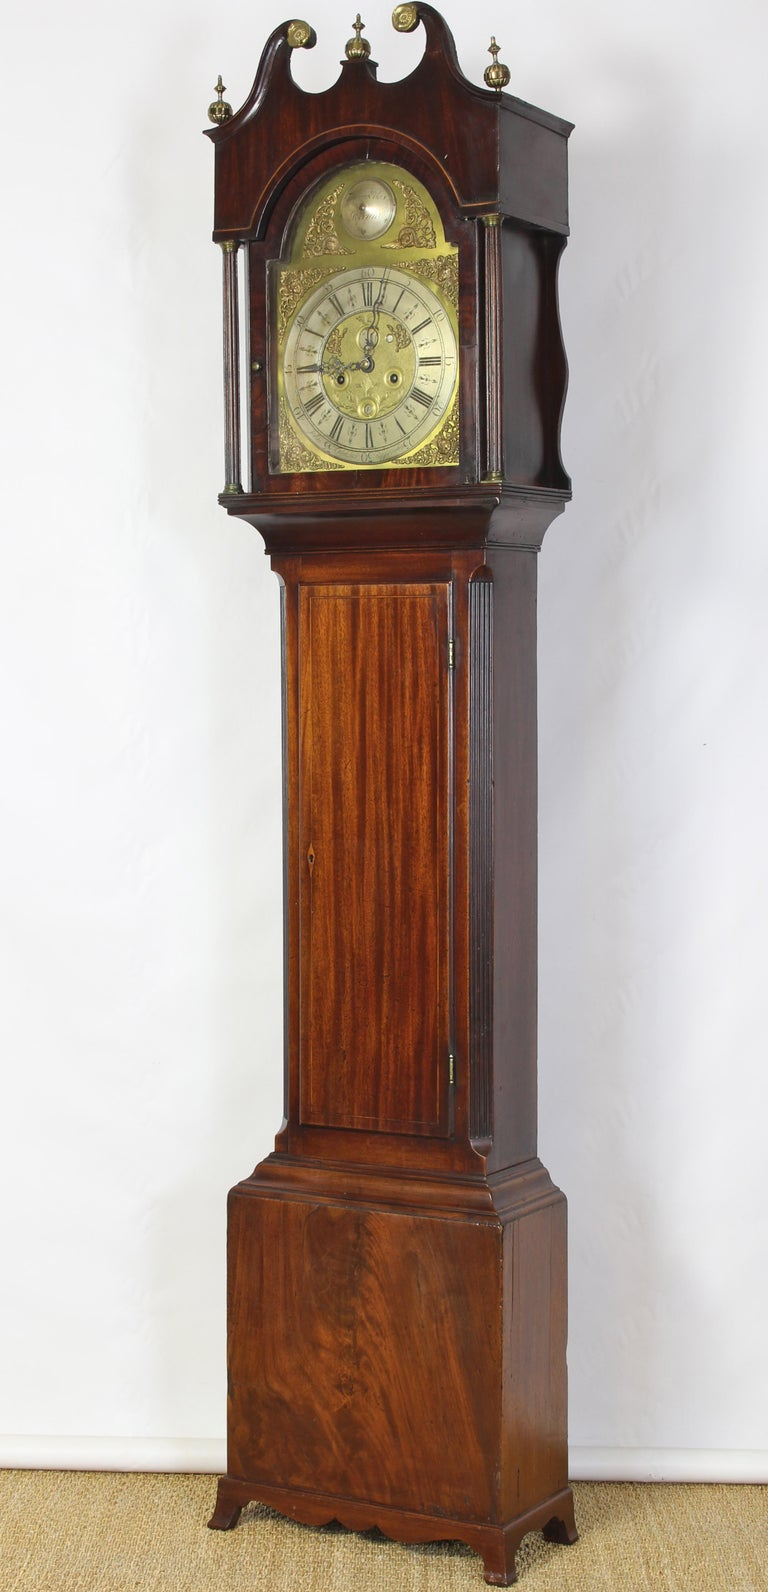 from Ronin tall case clock dating